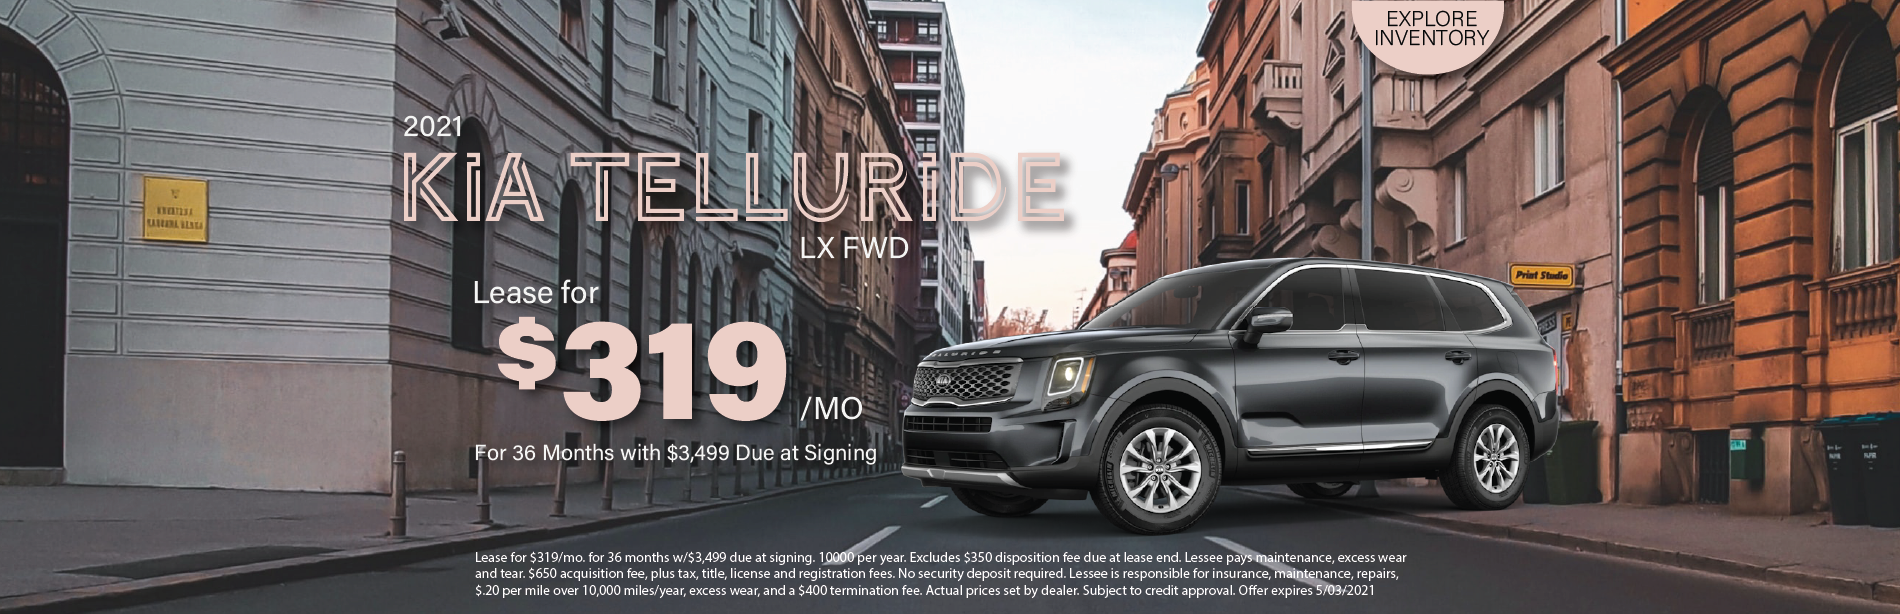 Lafontaine Kia Telluride- April 2021